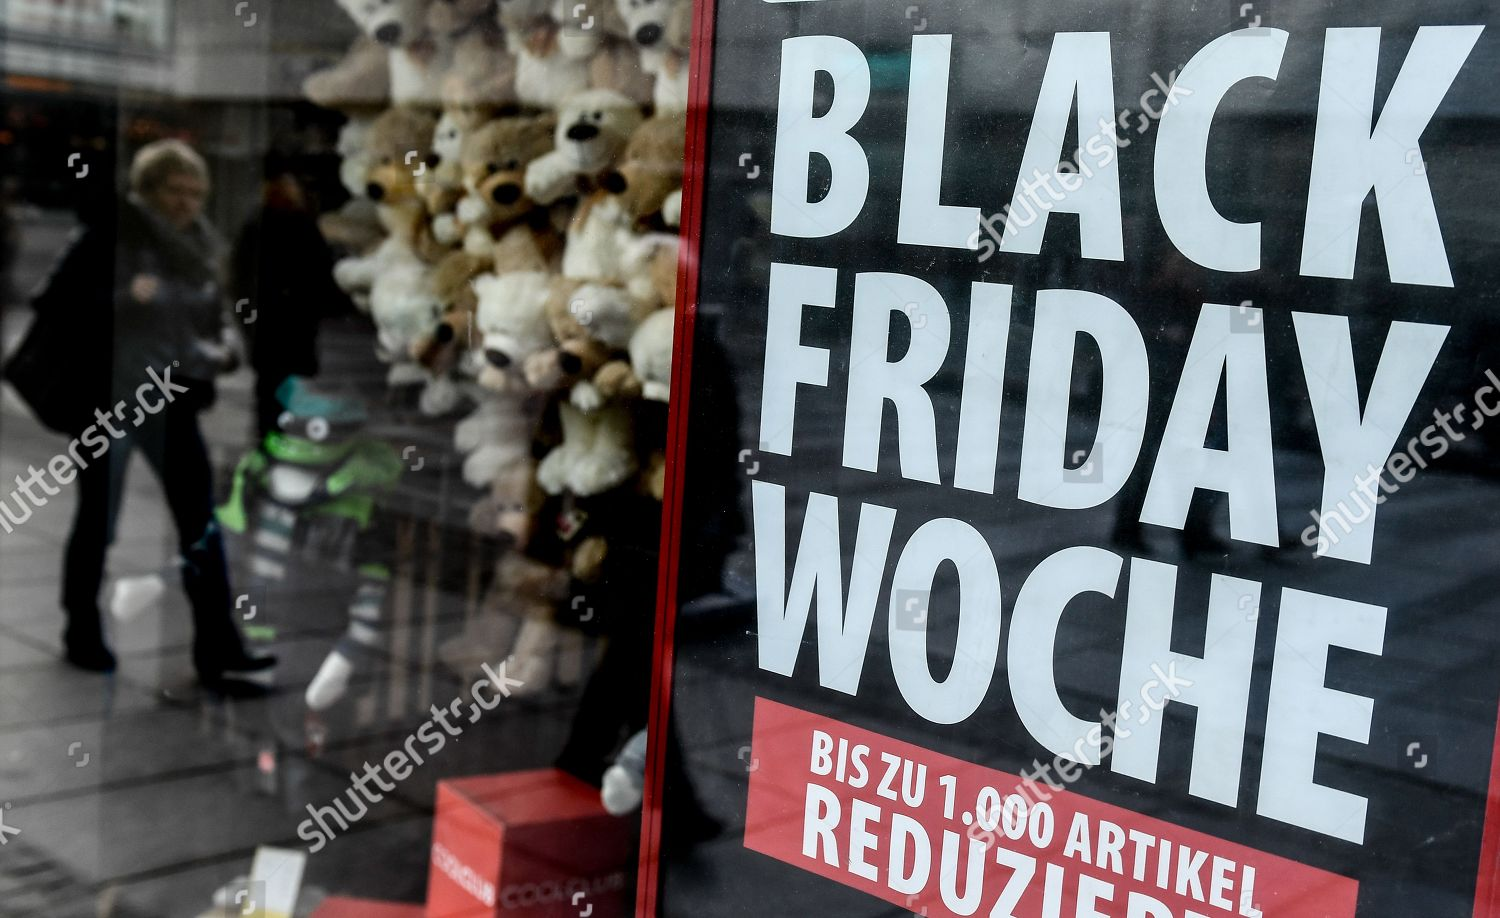 Black Friday In Germany Reflection Shows Woman Walking Next Black Friday Editorial Stock